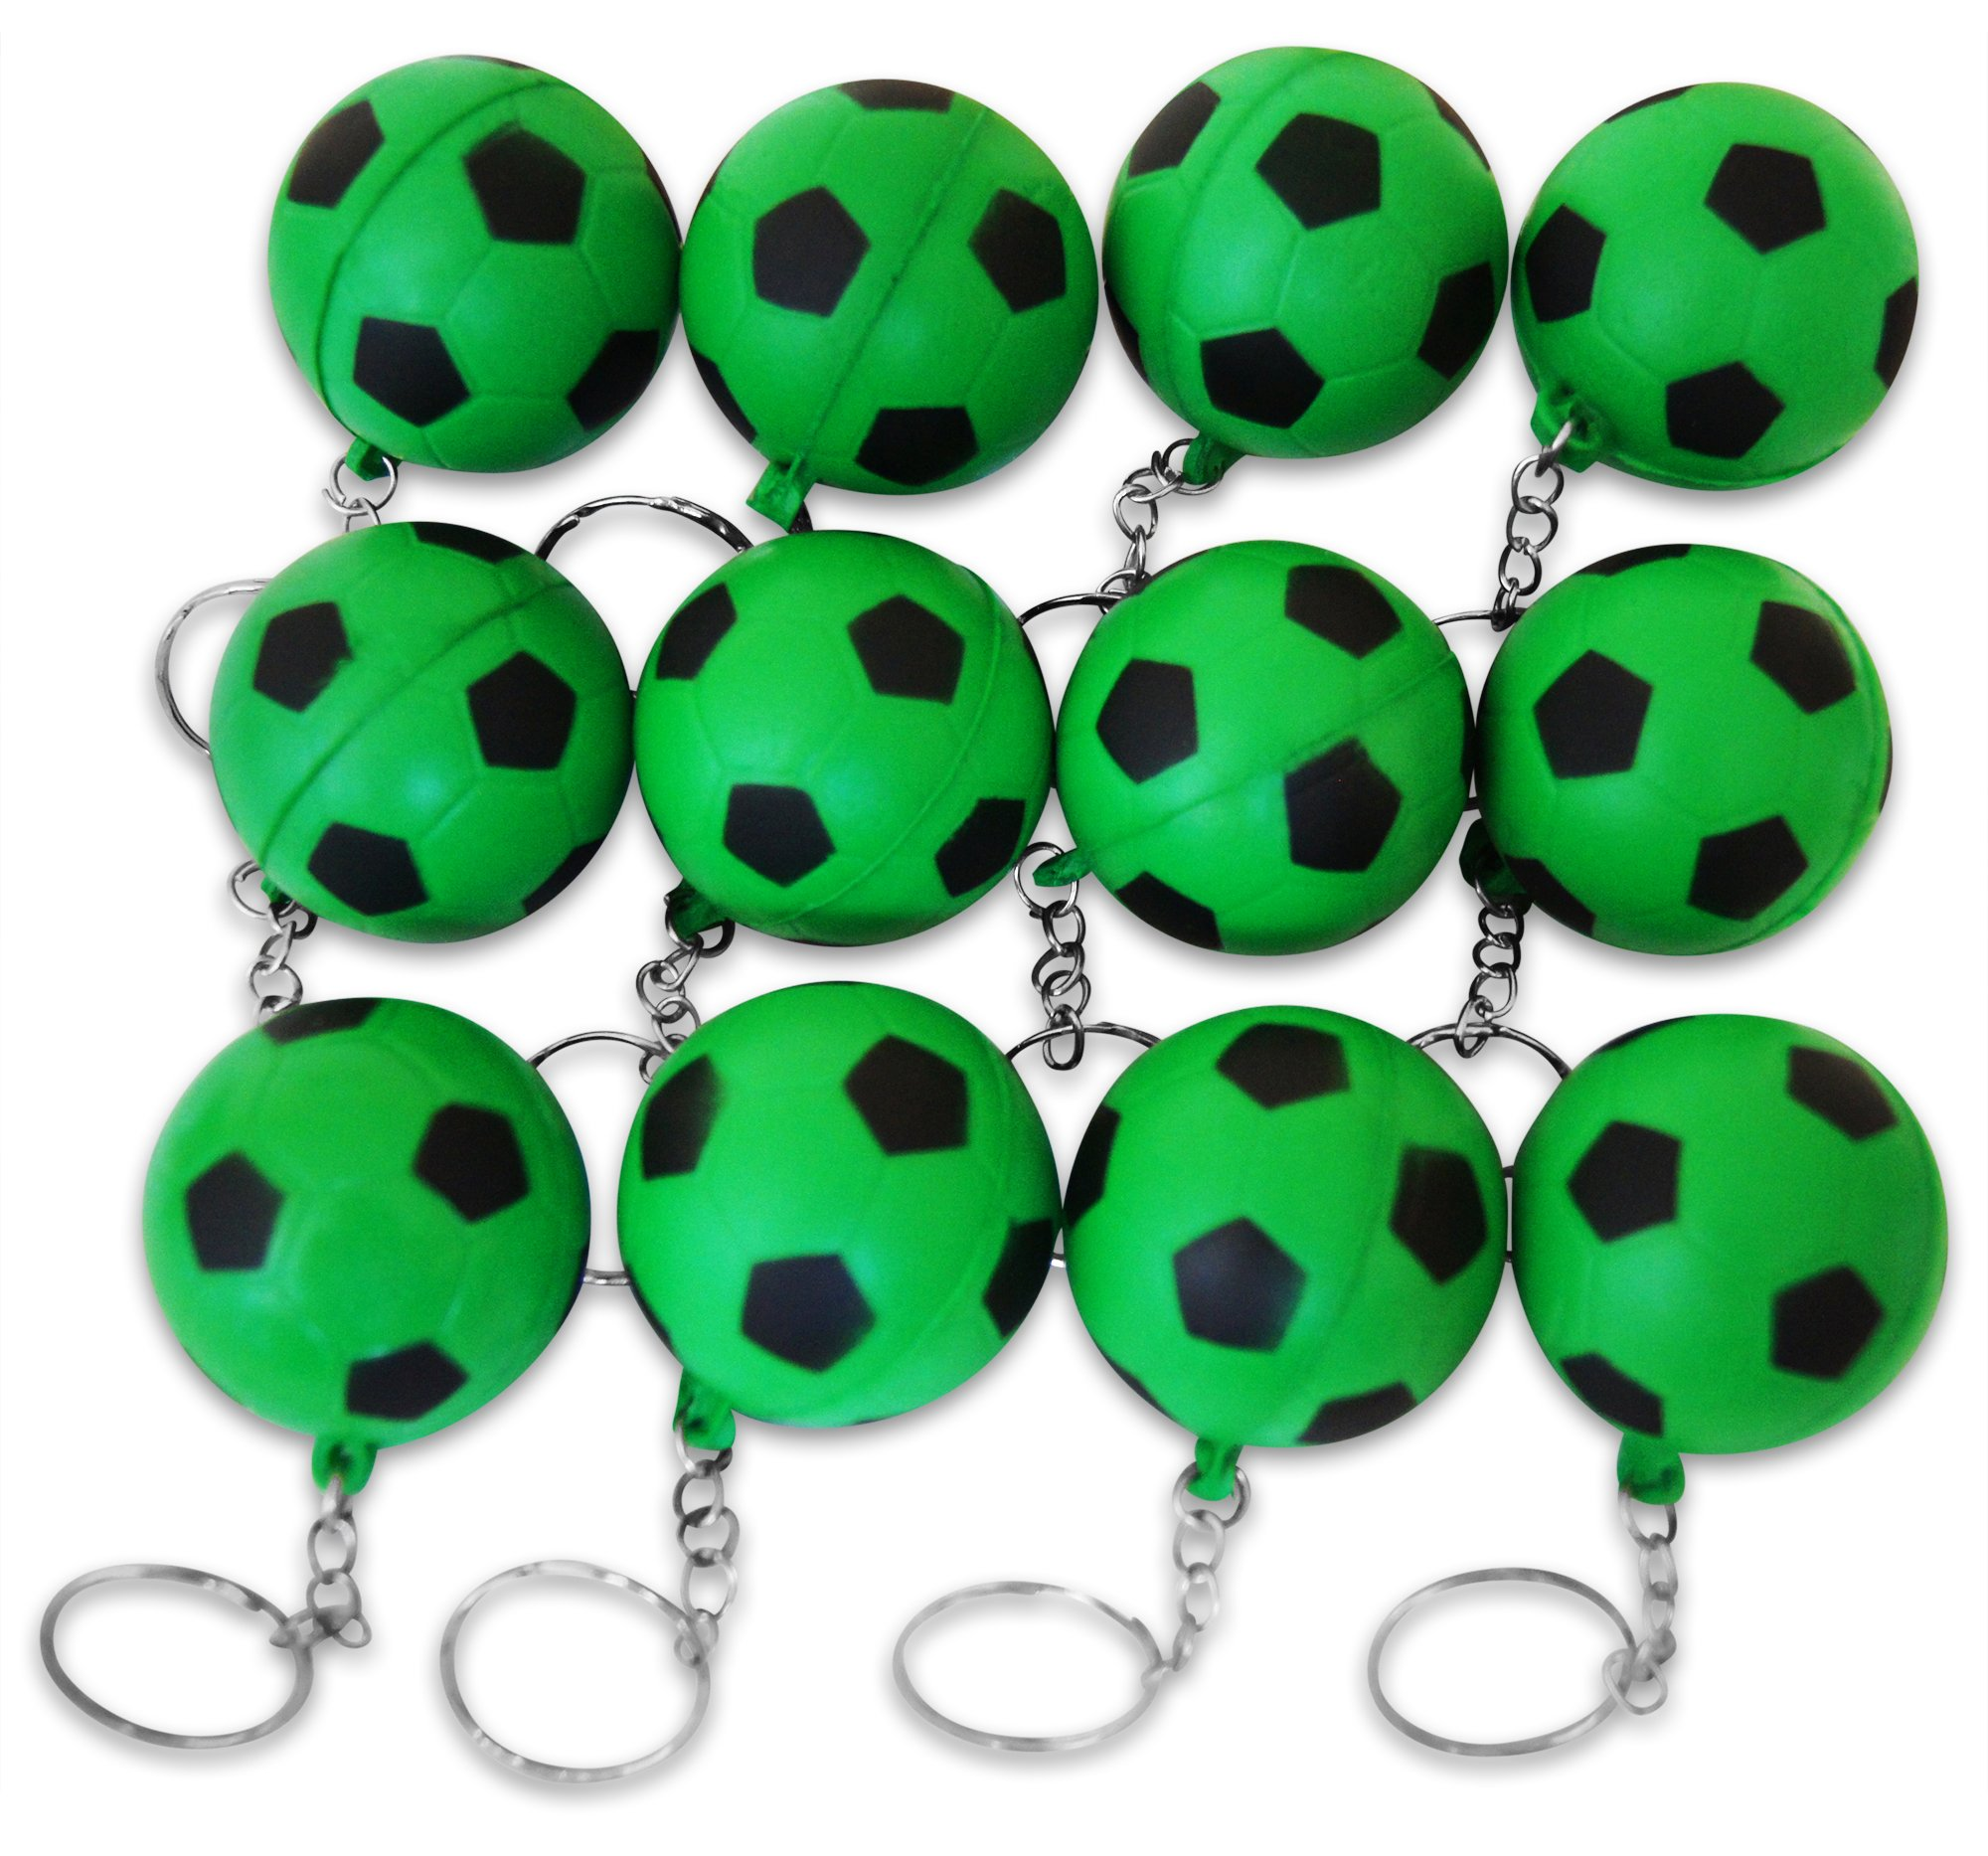 Novel Merk 12 Pack Green Soccer Ball Keychains for Kids Party Favors & School Carnival Prizes